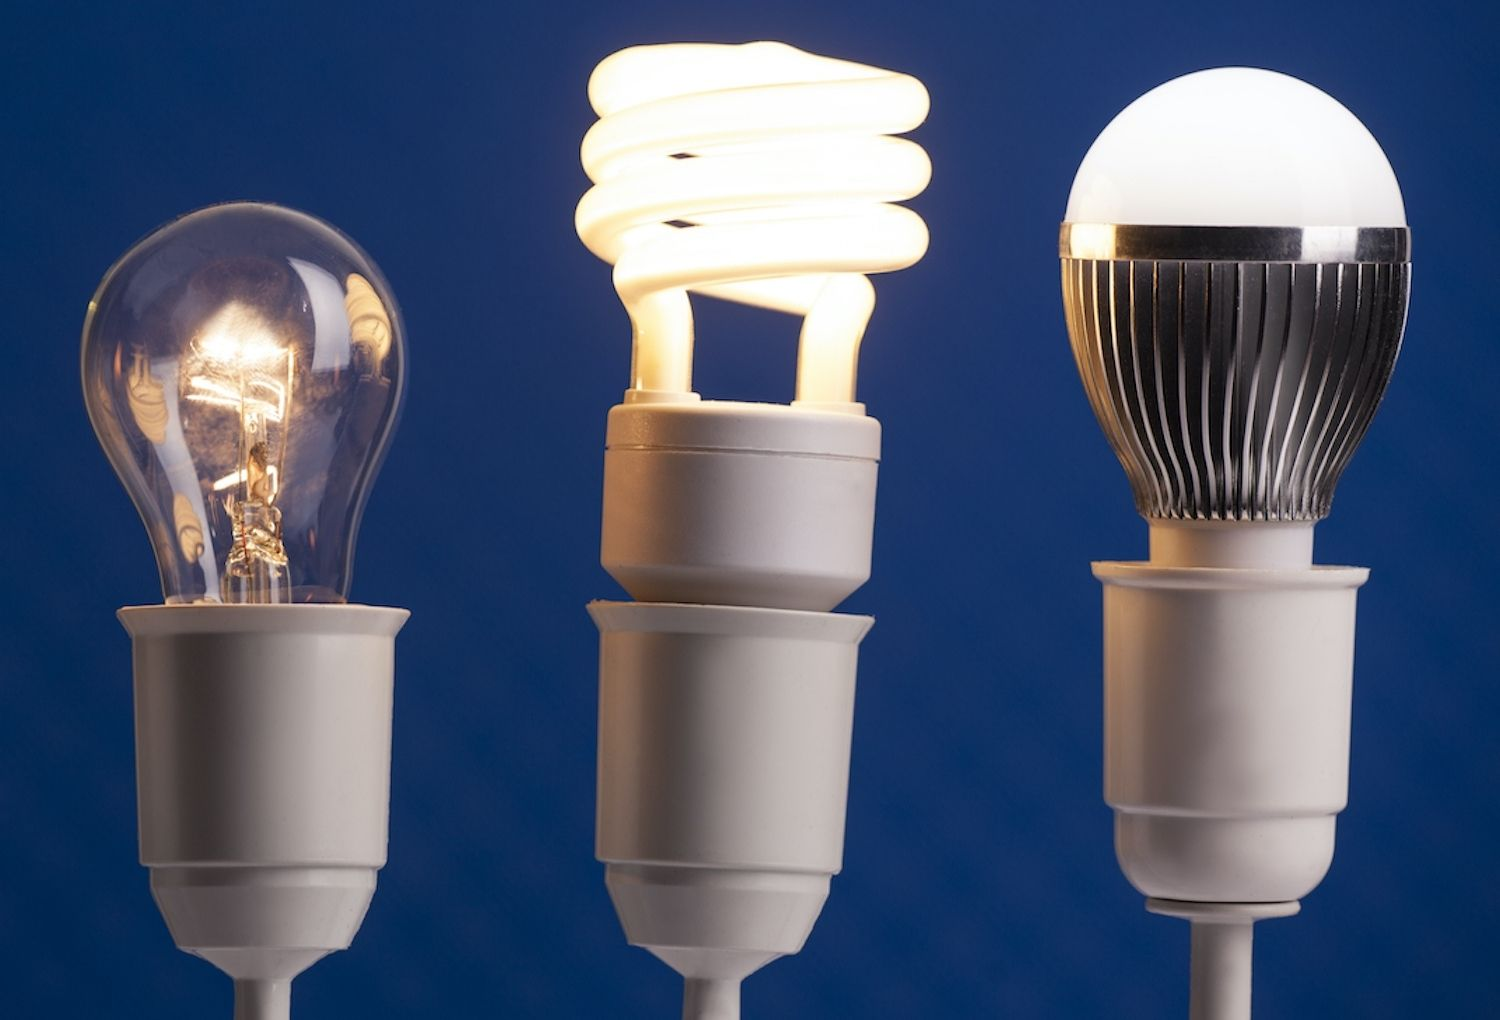 Three different light bulbs on blue background, choosing a new lightbulb gives opportunity for an electrical upgrade!